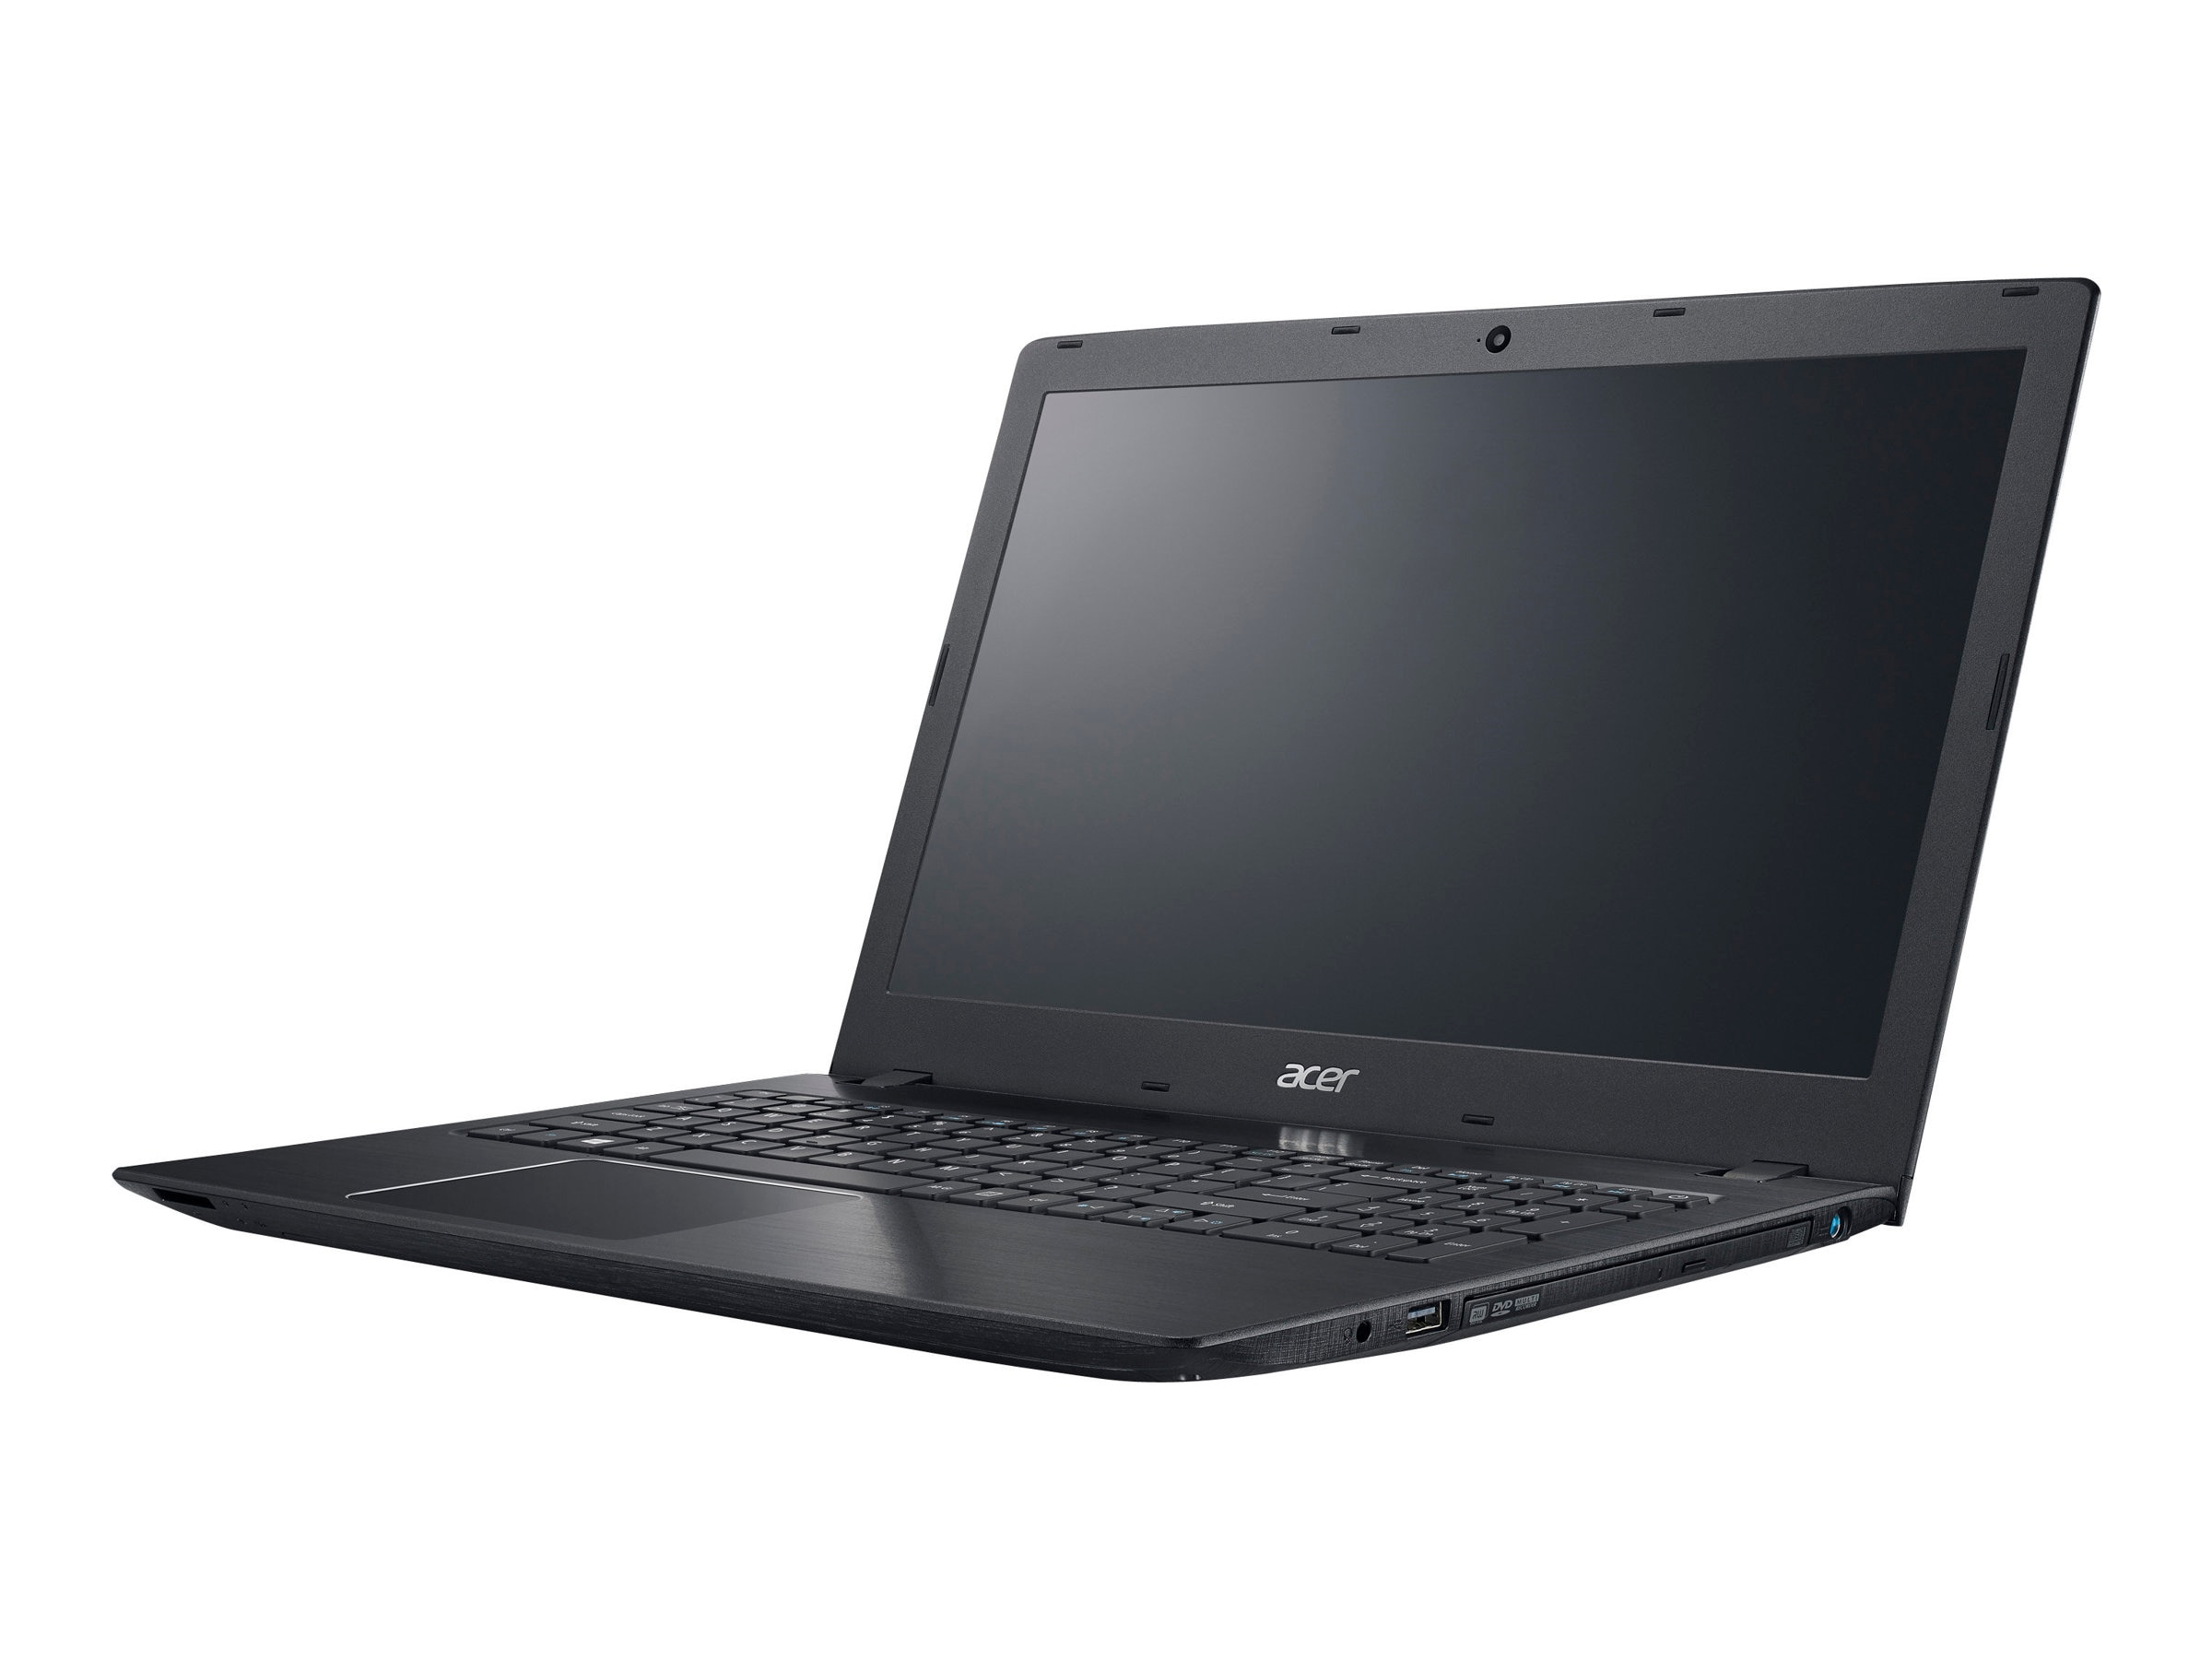 Acer Aspire E5-523-97JY 2.9GHz A9 15.6in display, NX.GDNAA.010